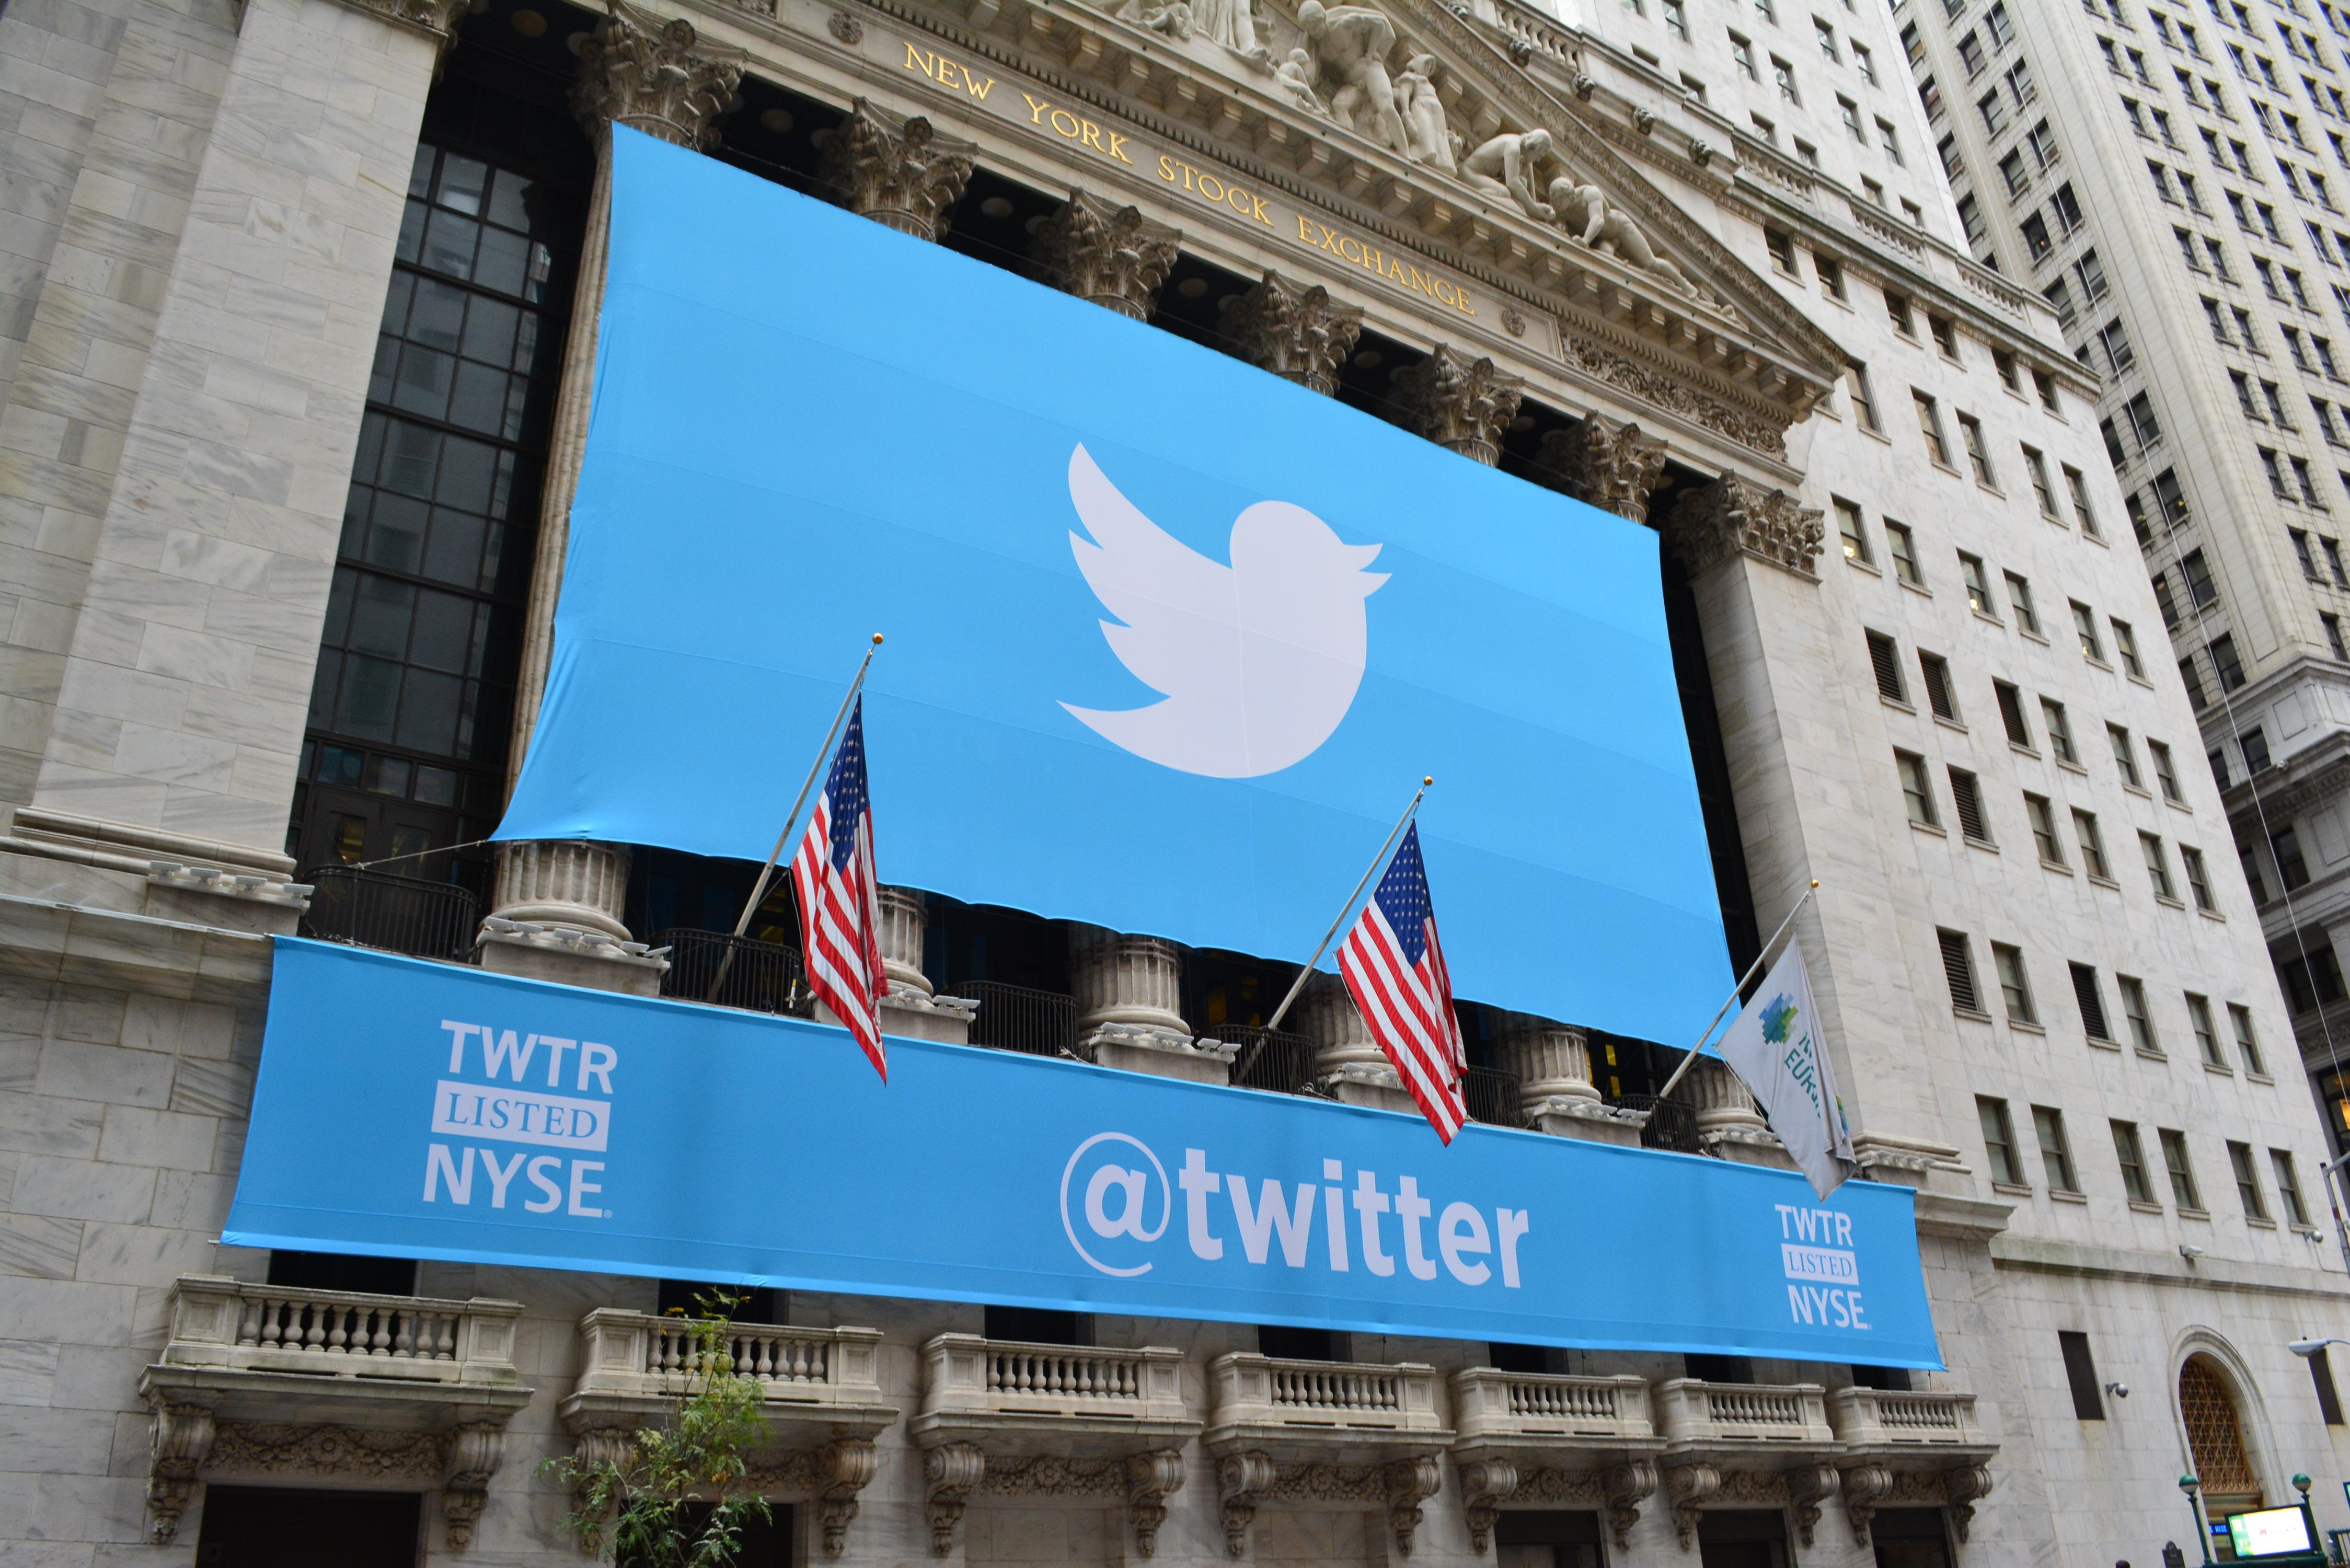 Why Is Twitter Stock Going Up